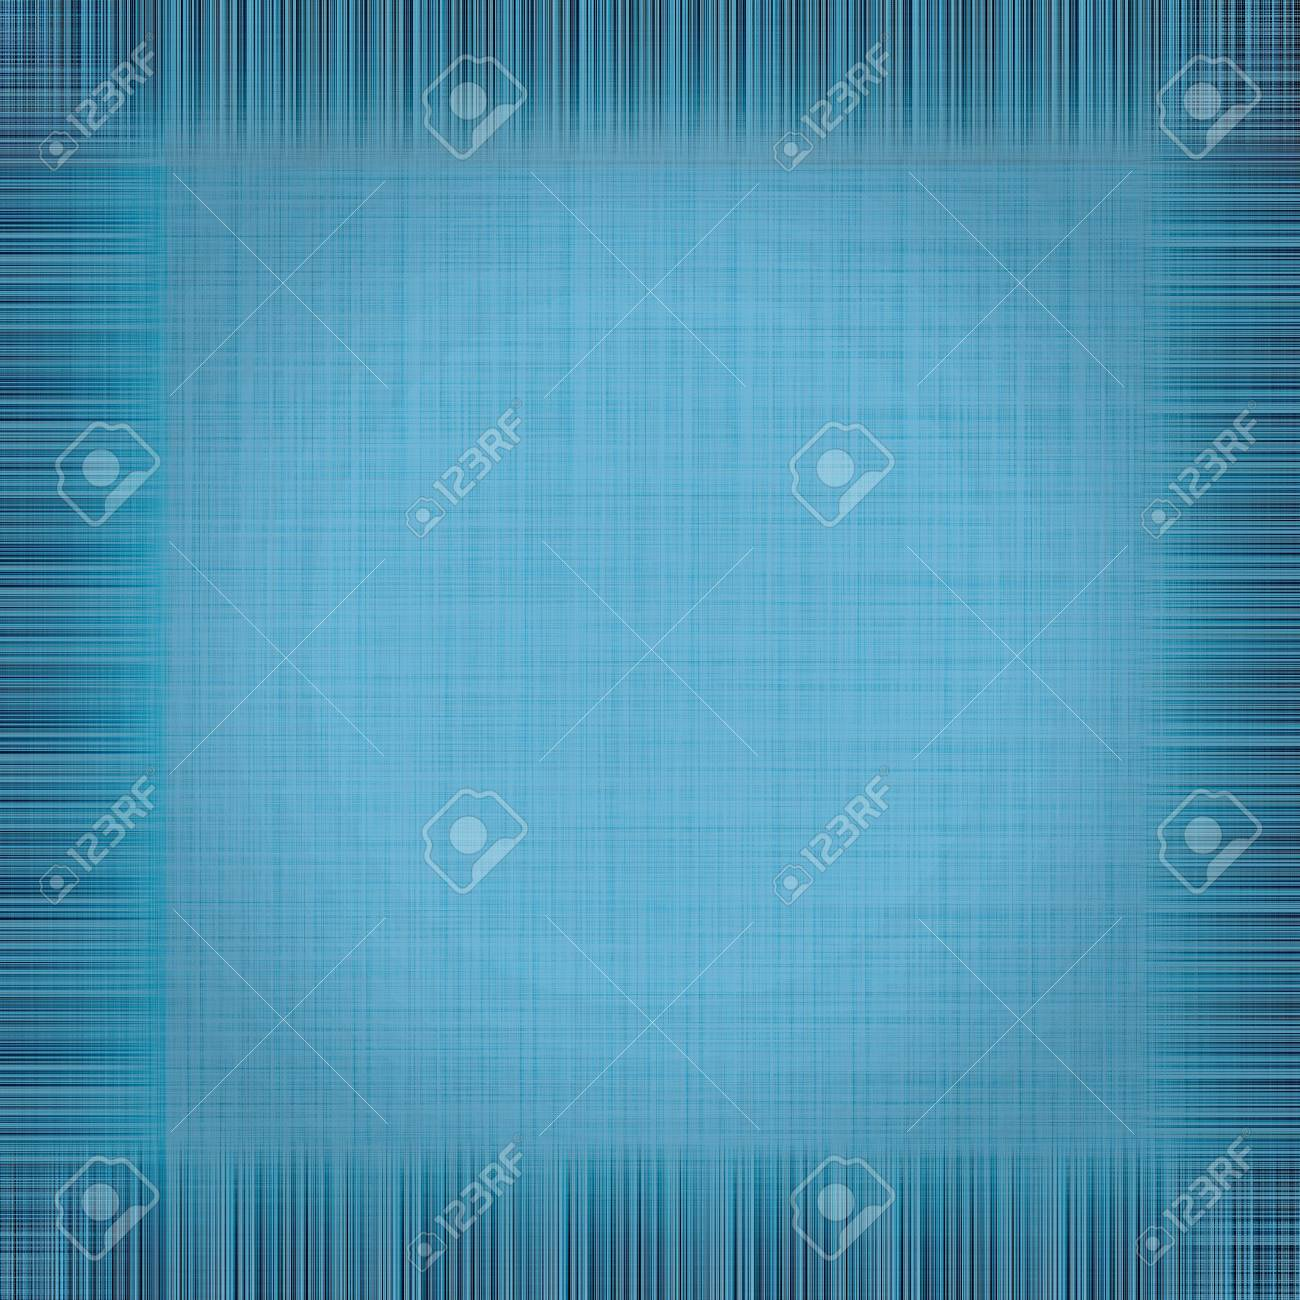 Abstract business science or technology background Stock Photo - 8999115